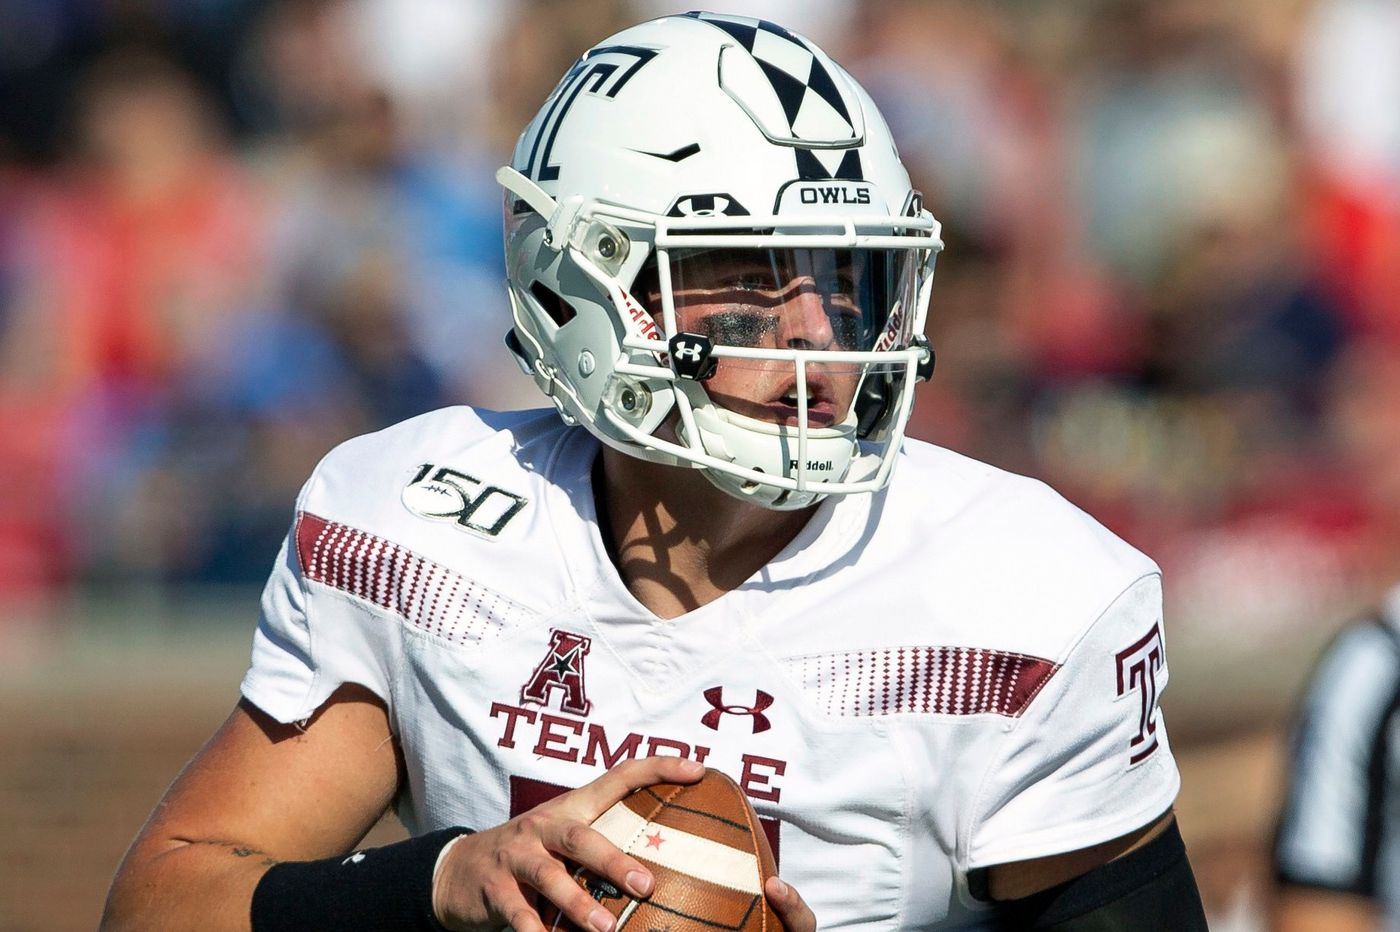 Temple football notes: Owls QB Anthony Russo liked his team's fight, but not the results